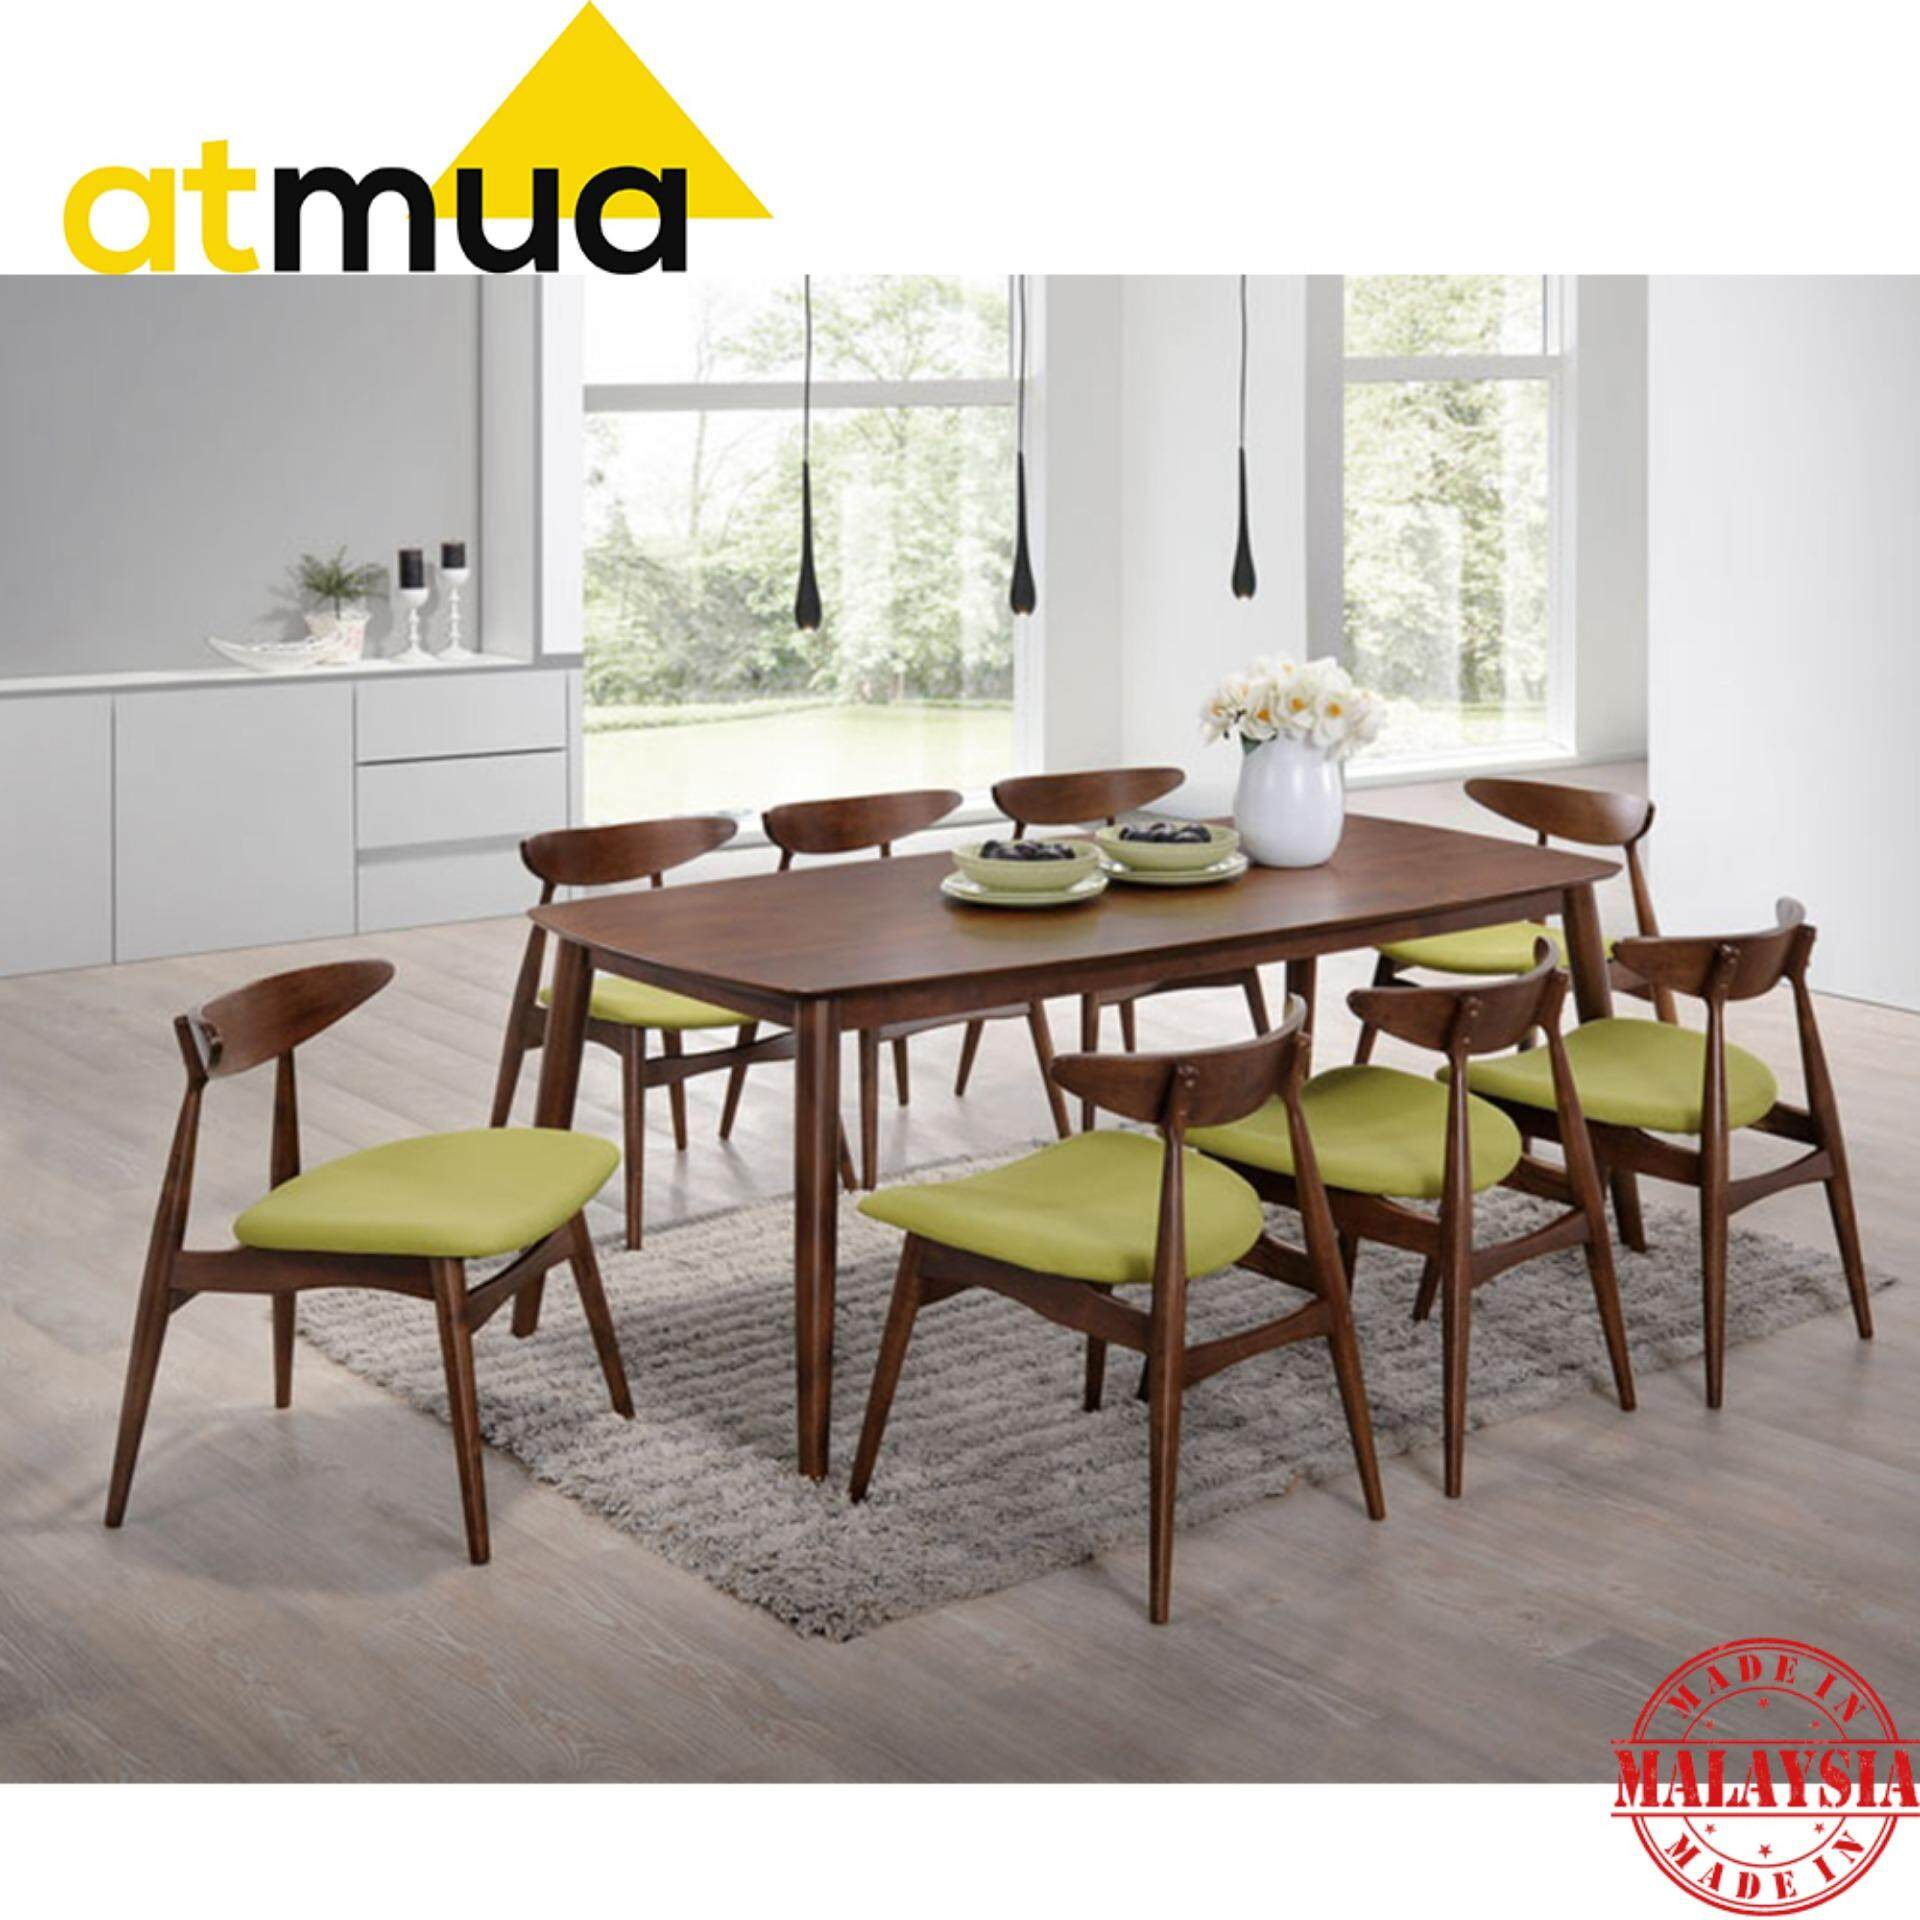 Atmua Borato Dining Set (1 Table + 8 Chairs) - Scandinavian Style [Full Solid Wood]